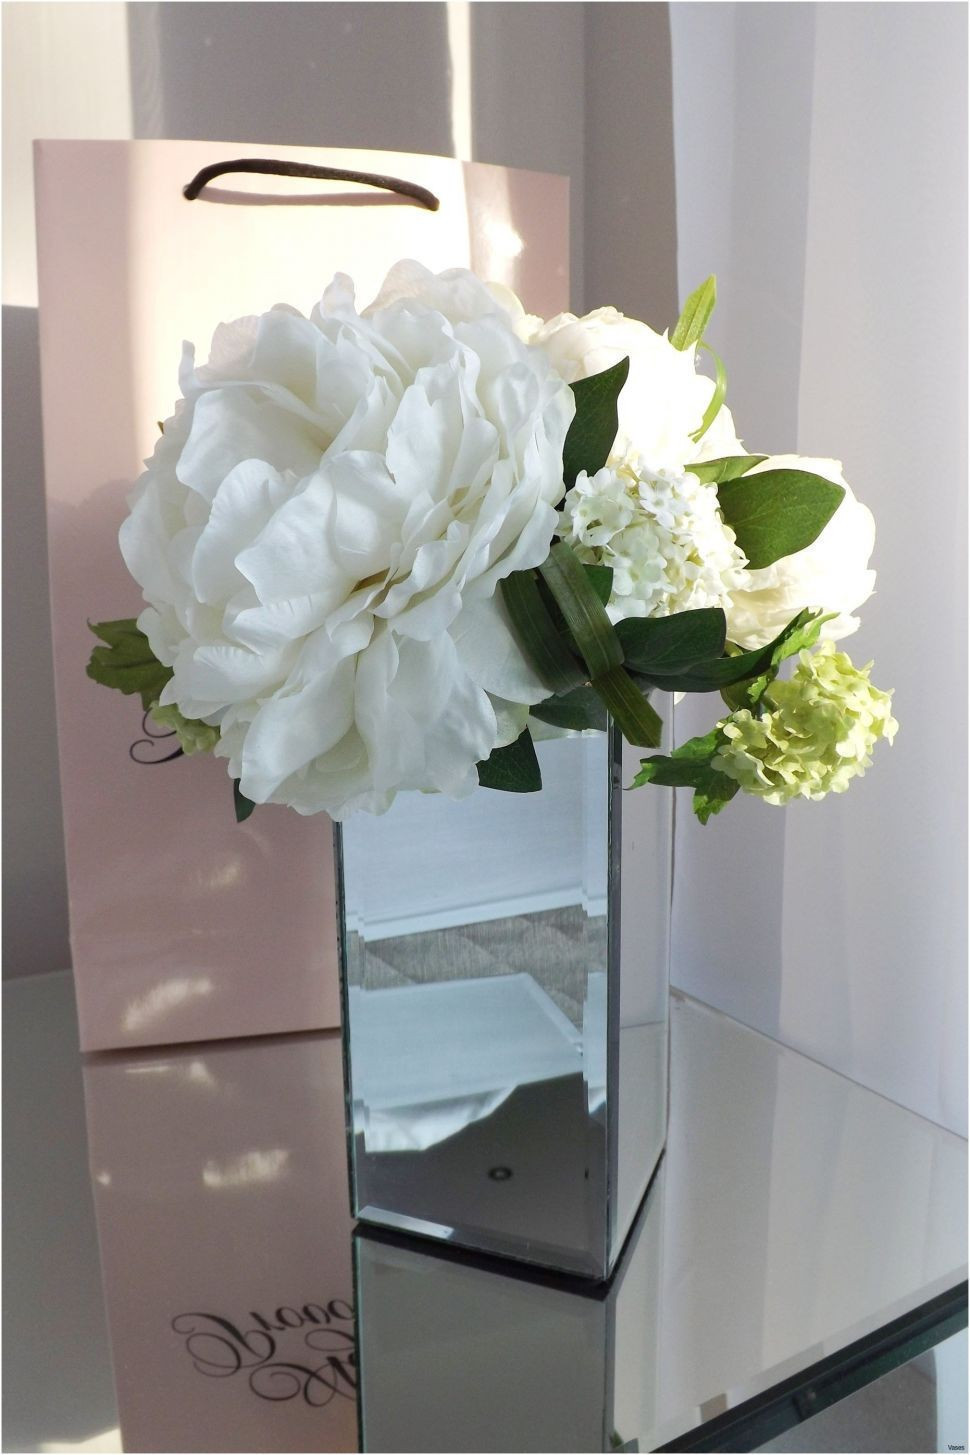 Cheap Glass Vases for Centerpieces Uk Of Wedding Decorations Centerpieces Lovely Wedding Decorations within 19 Wedding Decorations Centerpieces Wedding Decorations Centerpieces Awesome Silk Flowers Metal Vases 3h Mirrored Mosaic Vase